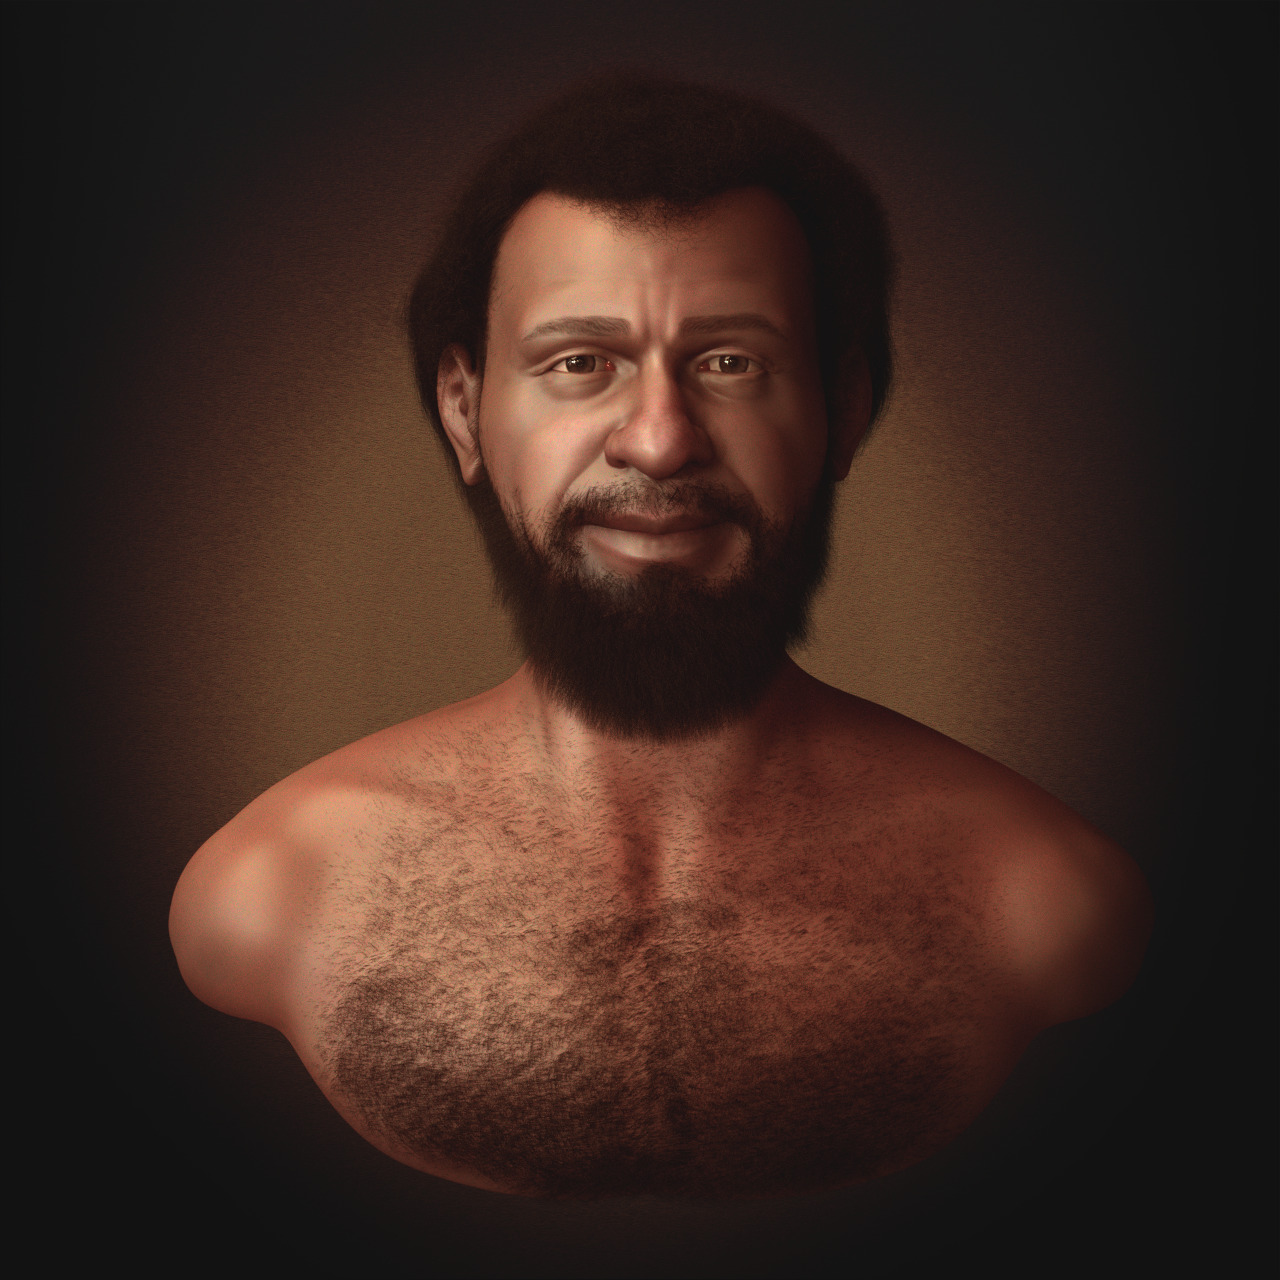 A facial reconstruction of an inhabitant of Galilea (Image by Cicero Moraes - Wikipedia.org).